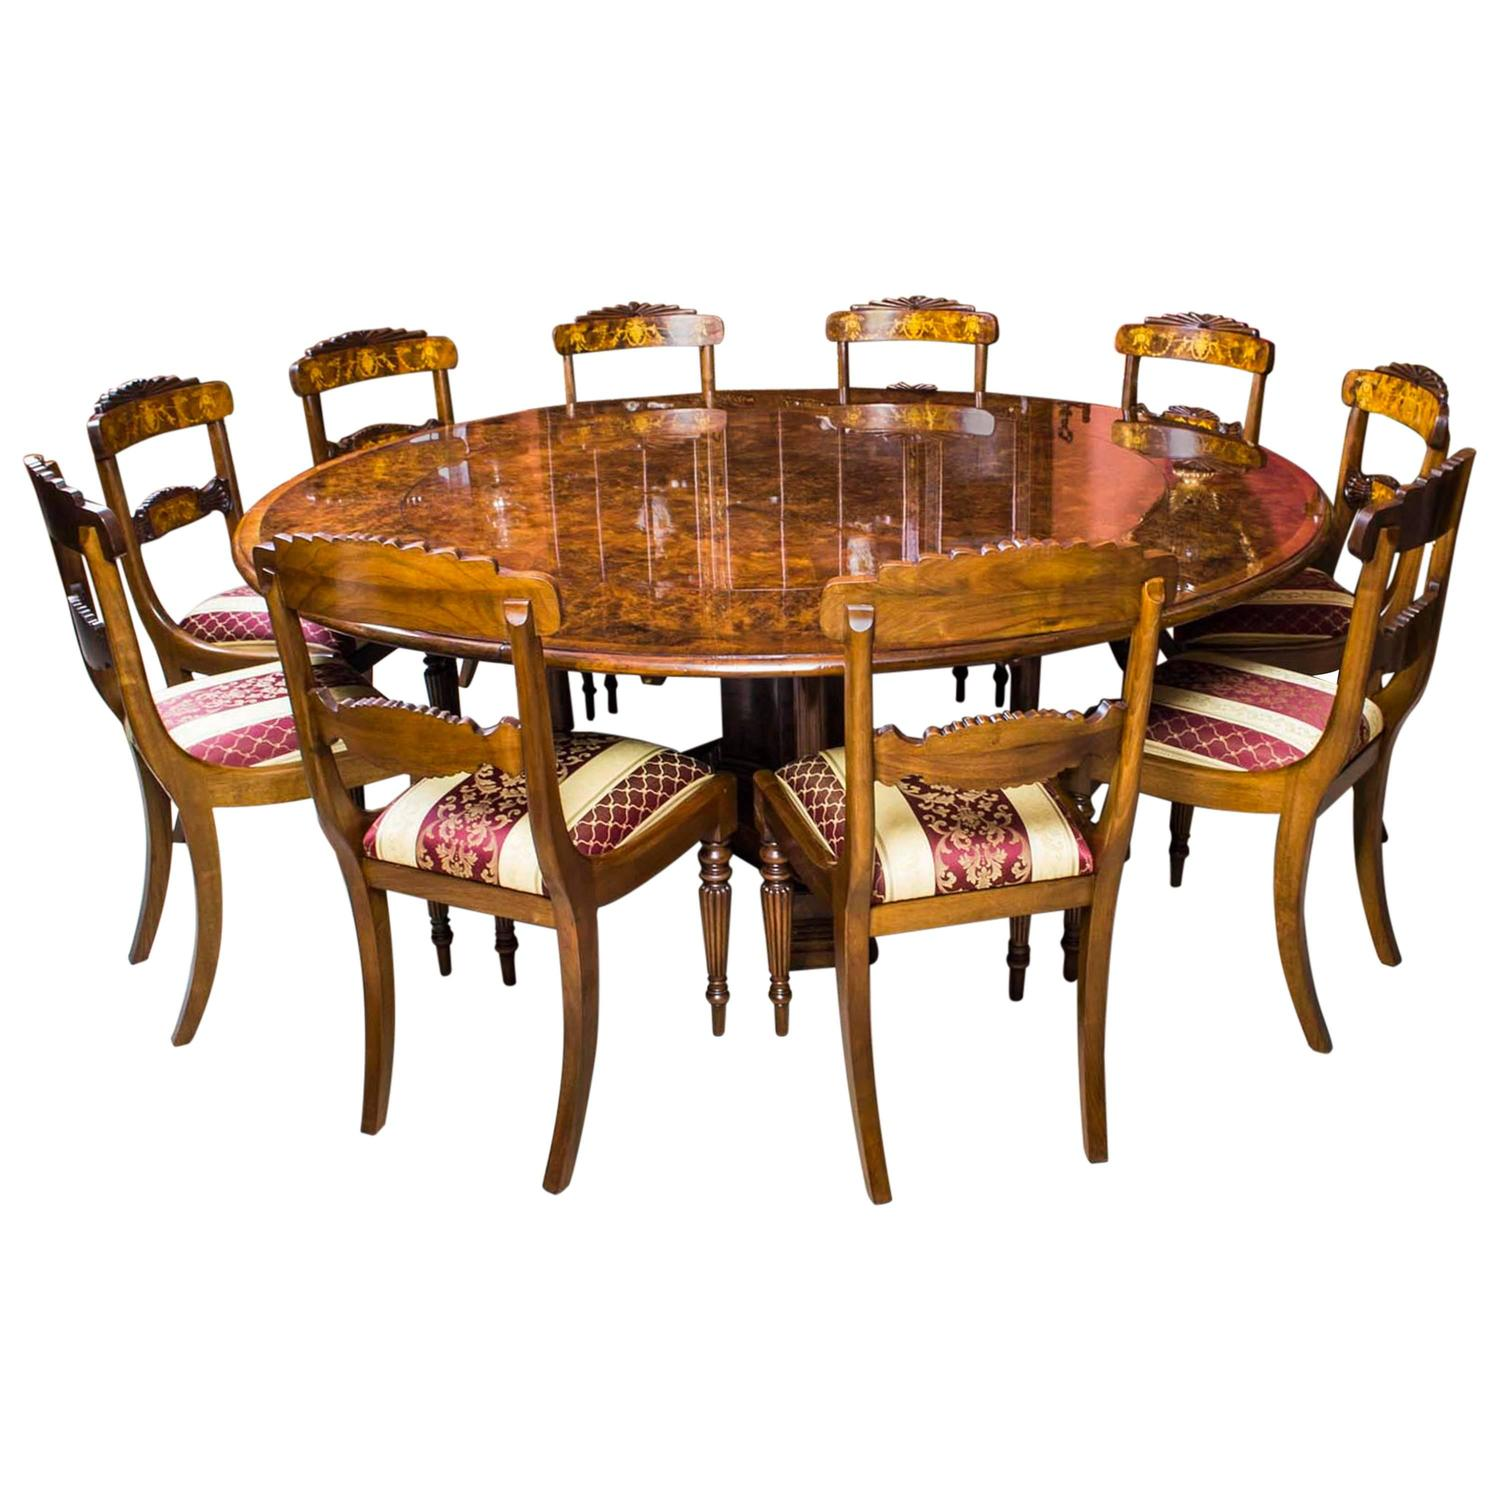 03135c 7ft diameter burr walnut jupe dining table 10 chairs 1